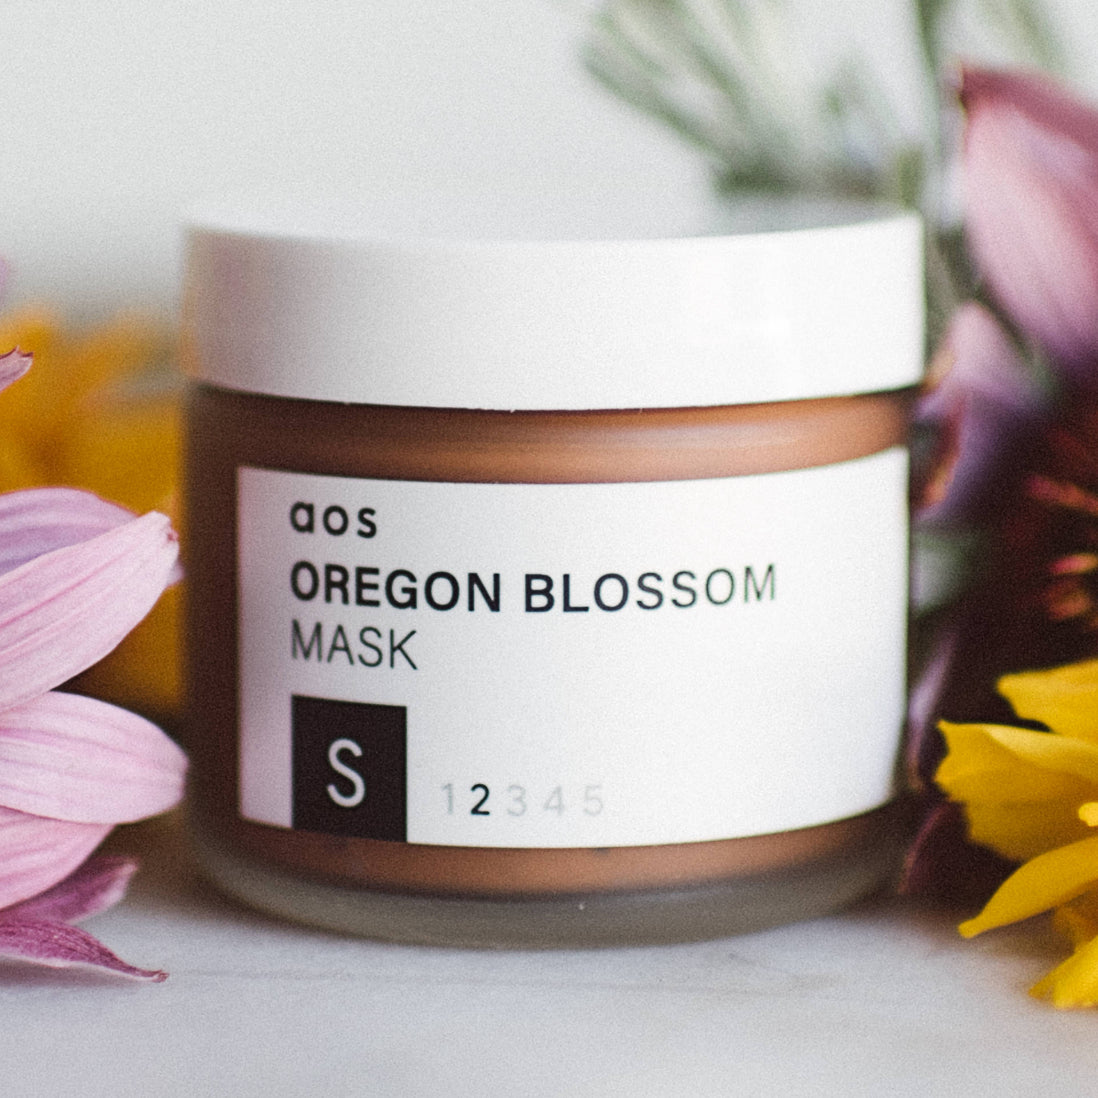 Oregon Blossom Mask